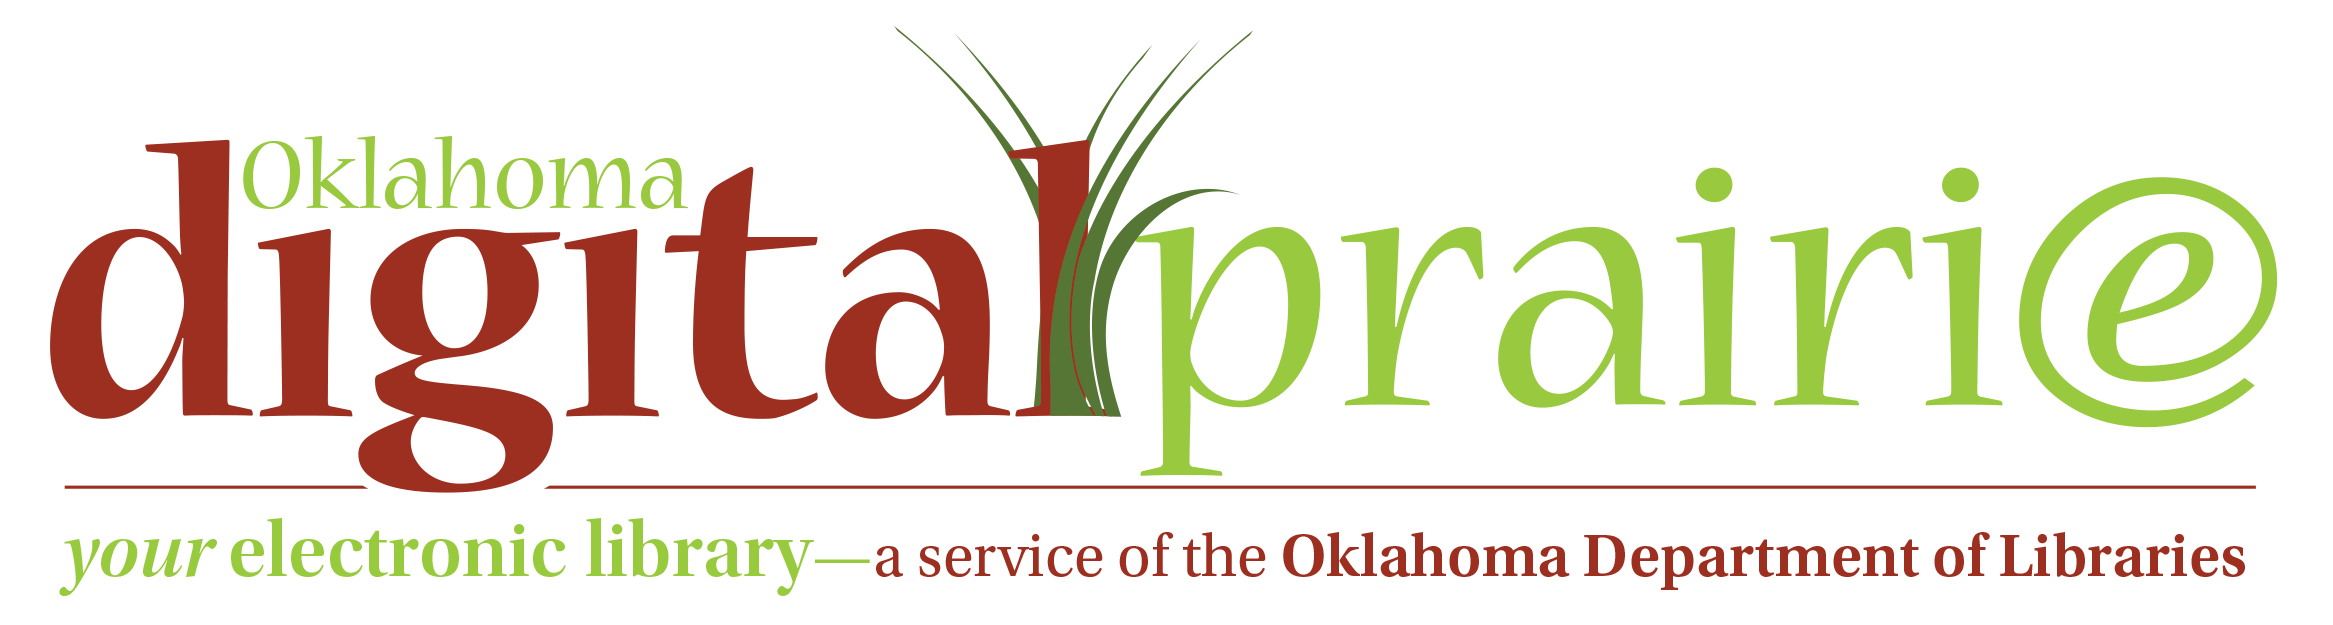 digital-prairie-logo